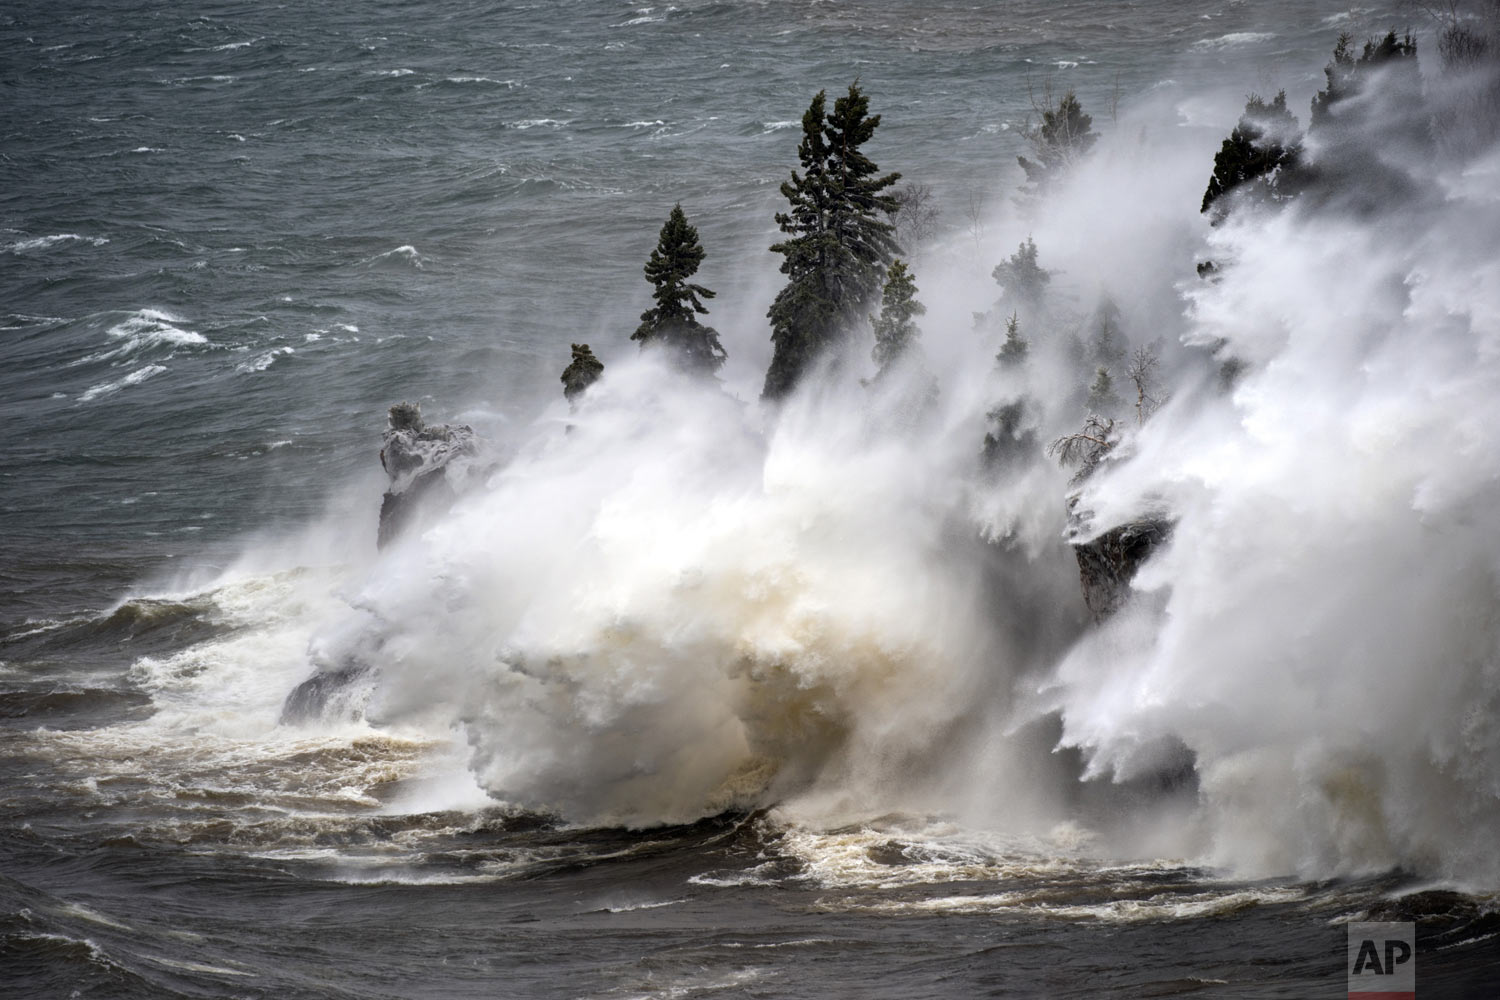 Waves pound the shoreline at Tettegouche State Park Thursday, April 11, 2019 at Silver Bay, Minn. Wind gusts were up to 50 miles per hour. (Brian Peterson/Star Tribune via AP)